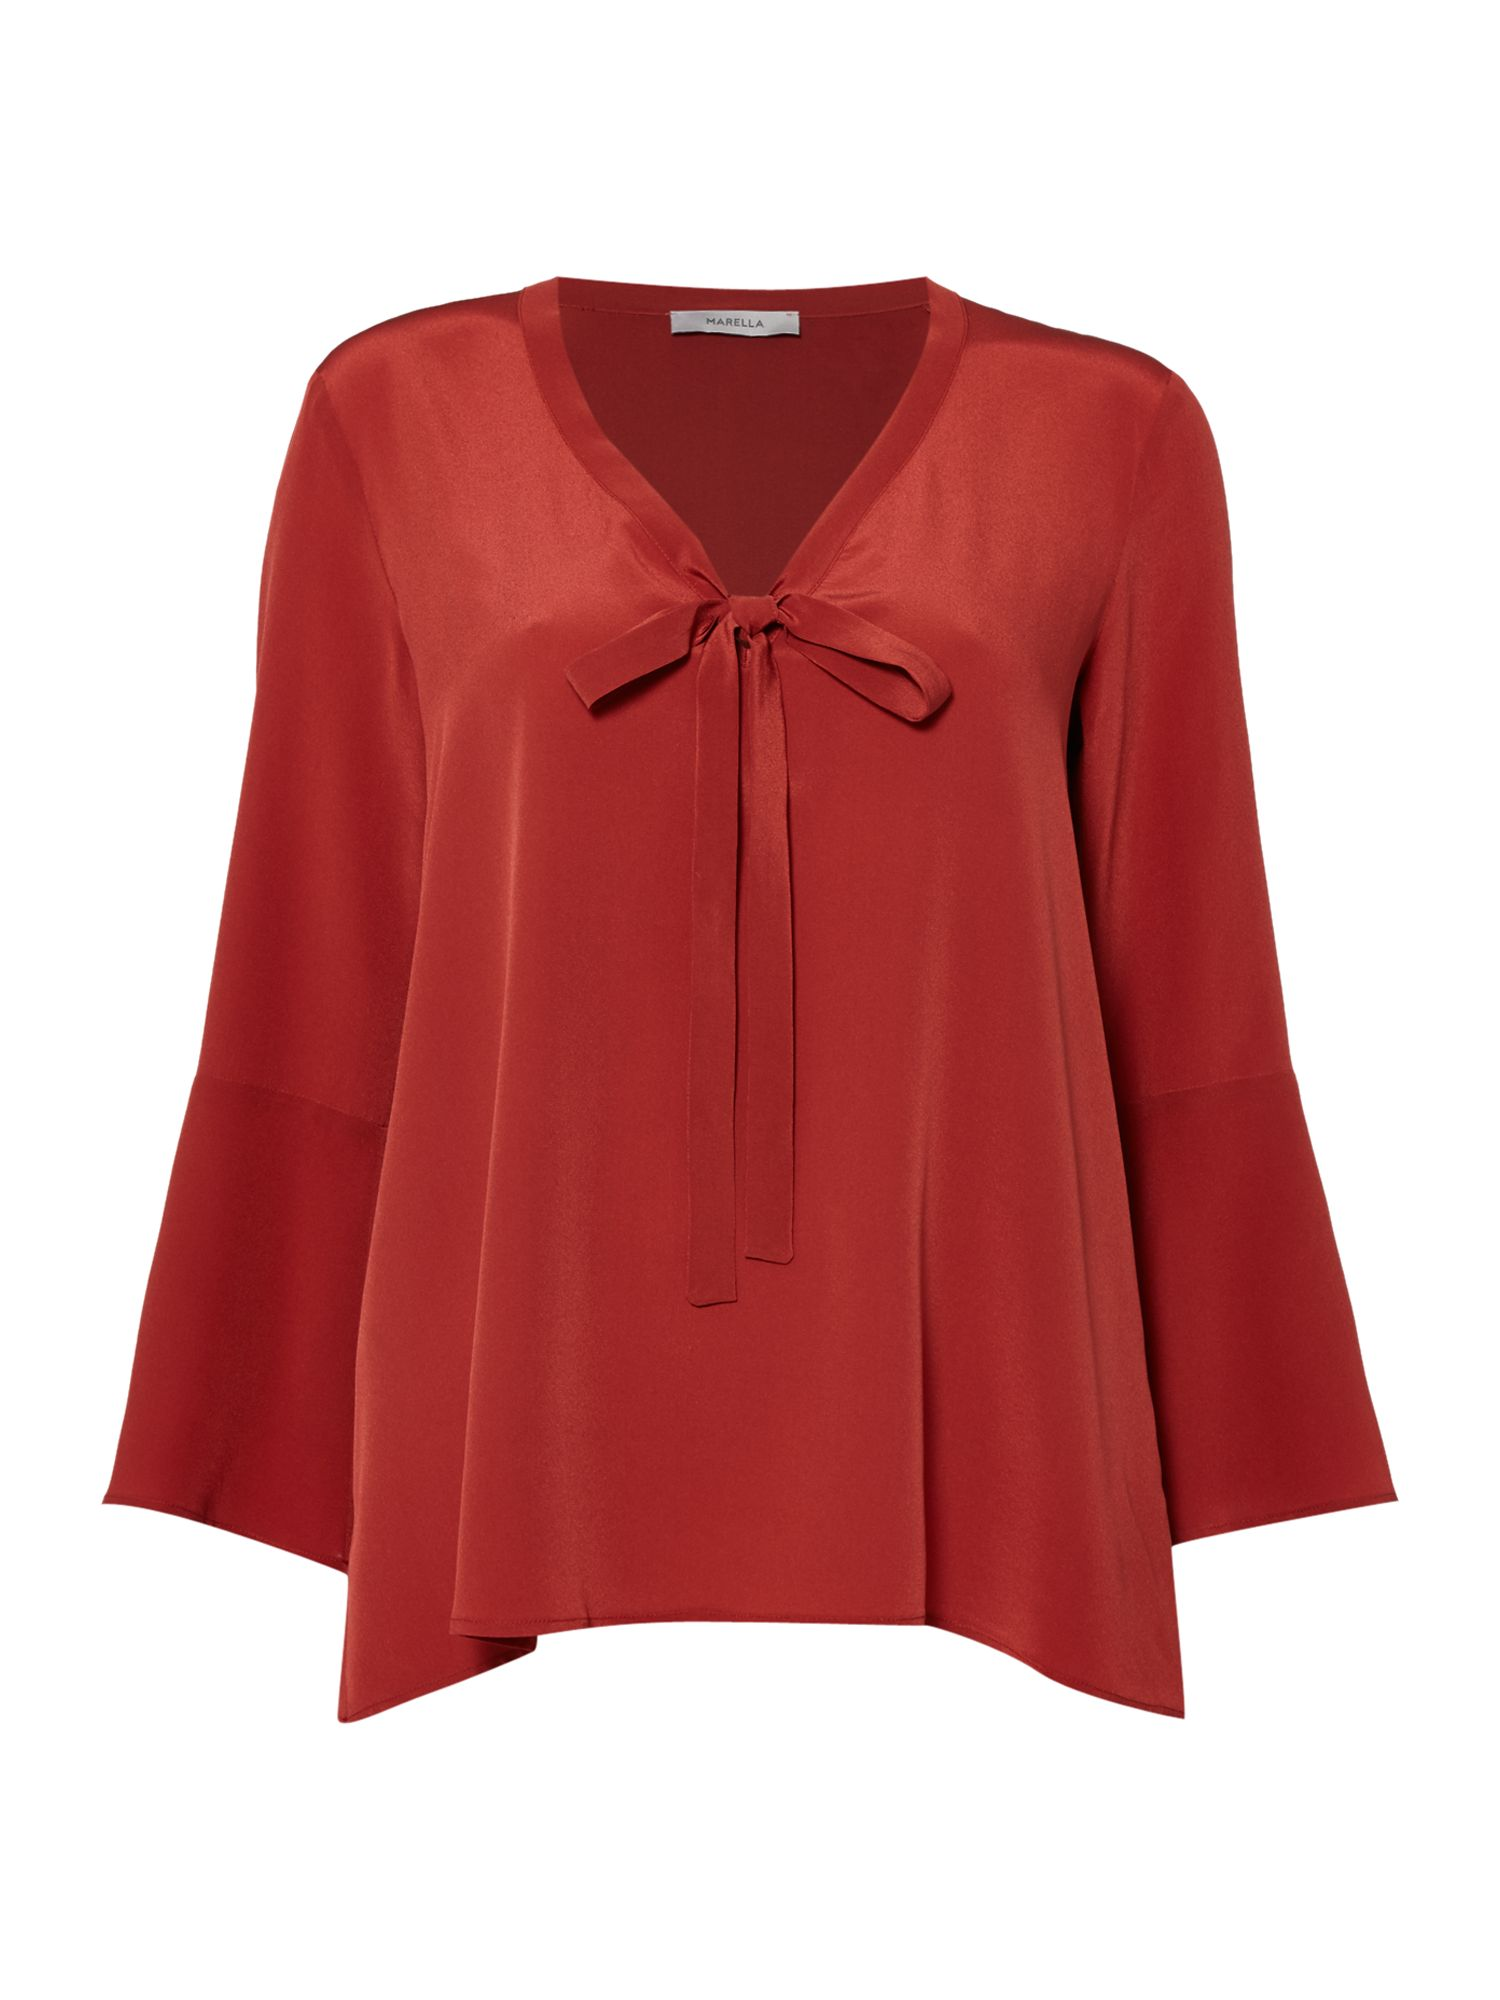 Marella Giugno silk blouse with tie, Rust